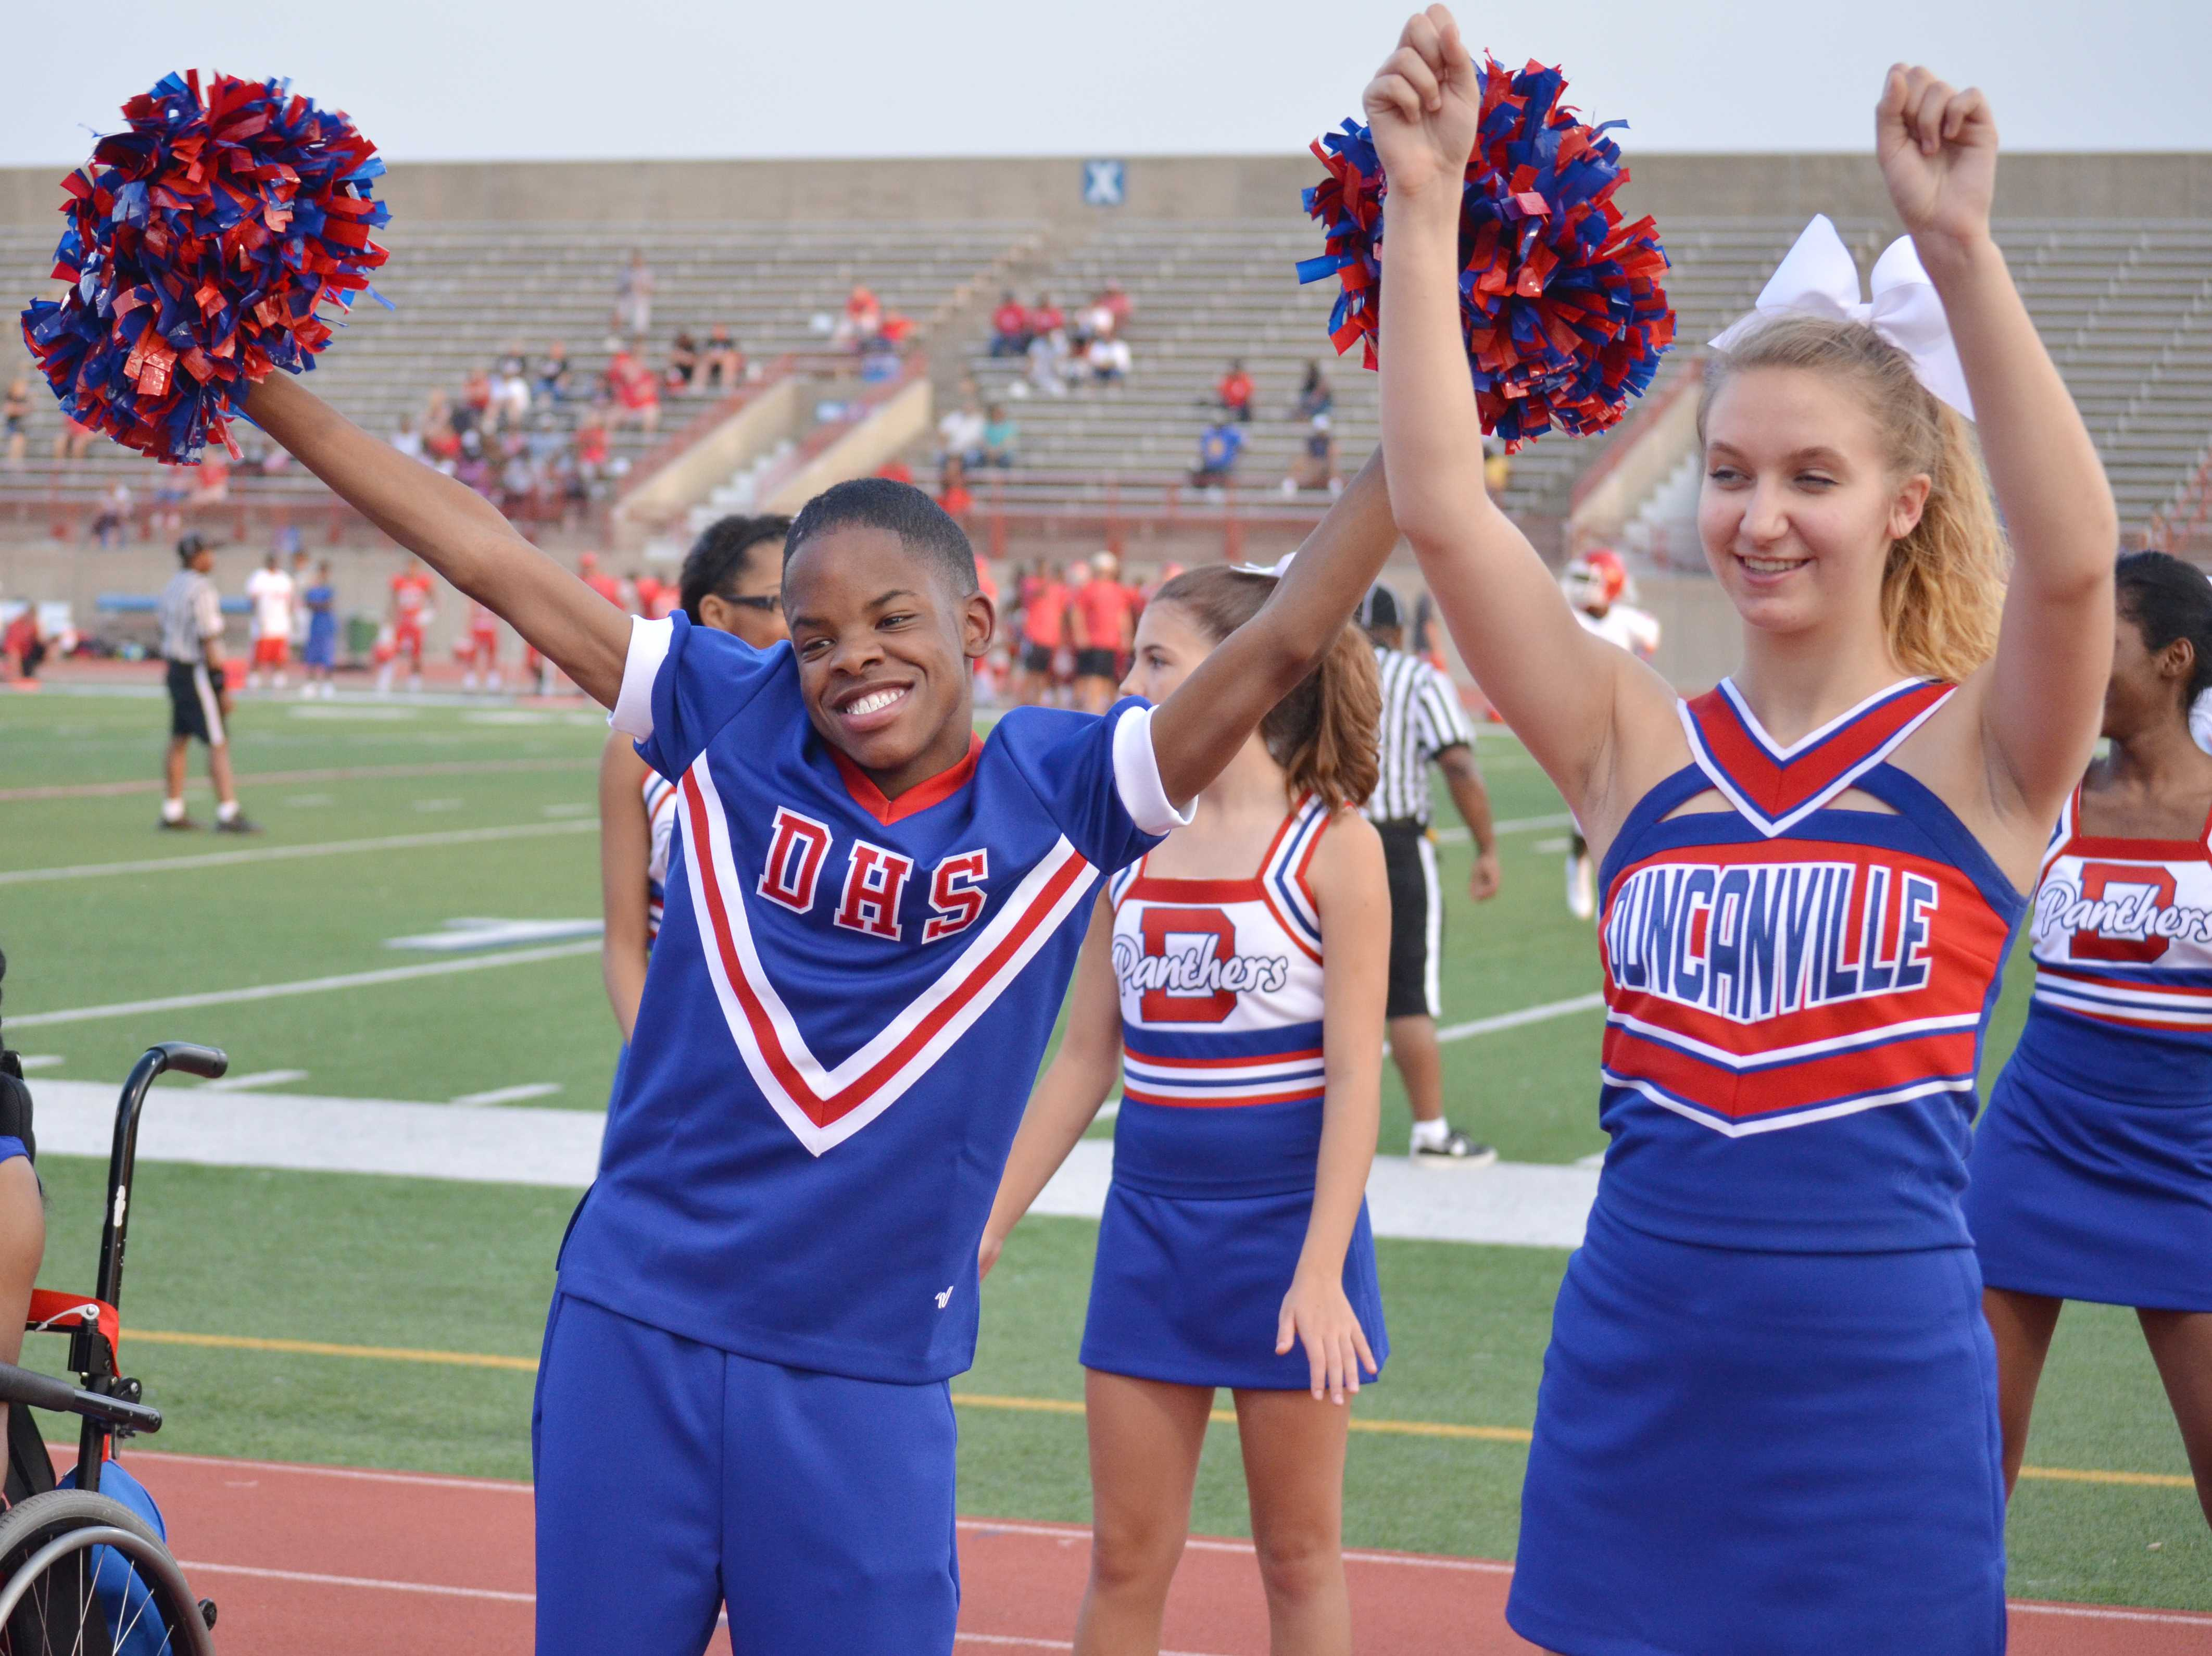 Damion  Jordon dances to a cheer with a varsity cheerleader at a junior varsity game.  Jordan has Autism but comes out of his shell when he is on the field or at a pep rally as a Sparkler cheerleader. (Mireya Ibarra photo)